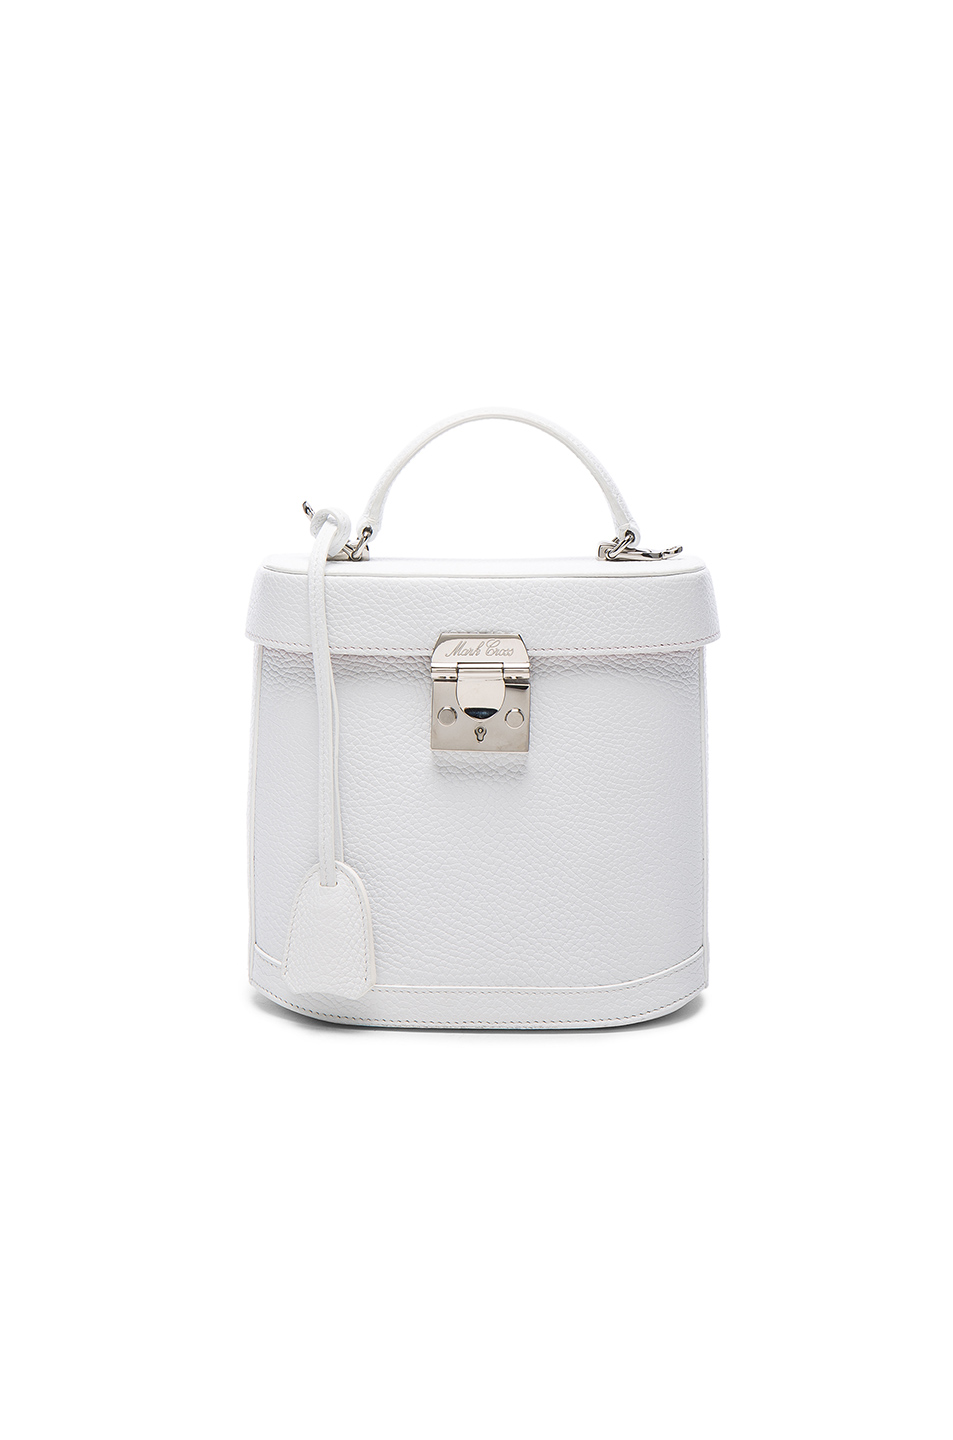 30ec3b250ce Mark Cross Benchley Textured-Leather Shoulder Bag In White